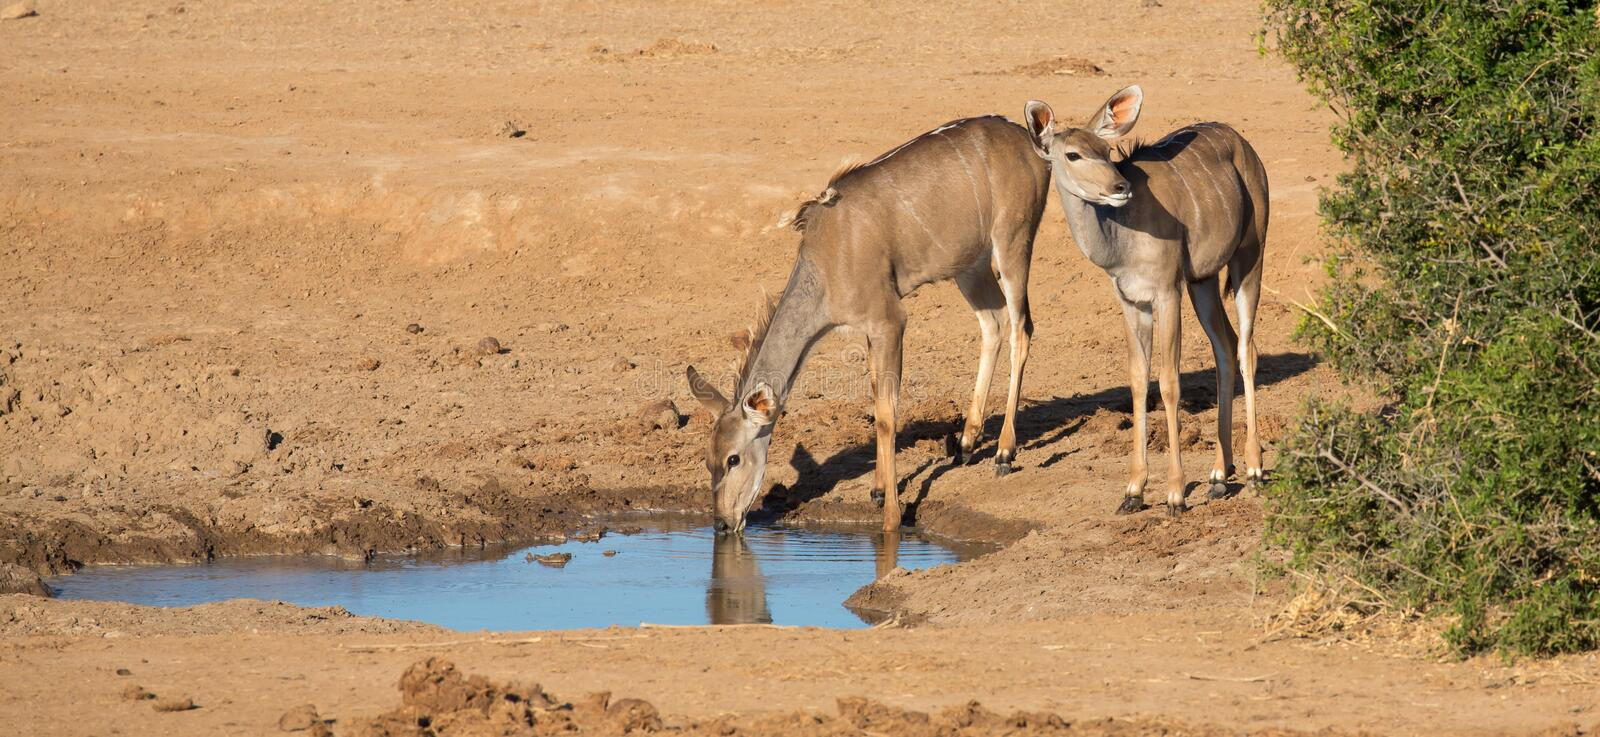 Impala Antelope Quenching Thirst at a Water Hole stock photo